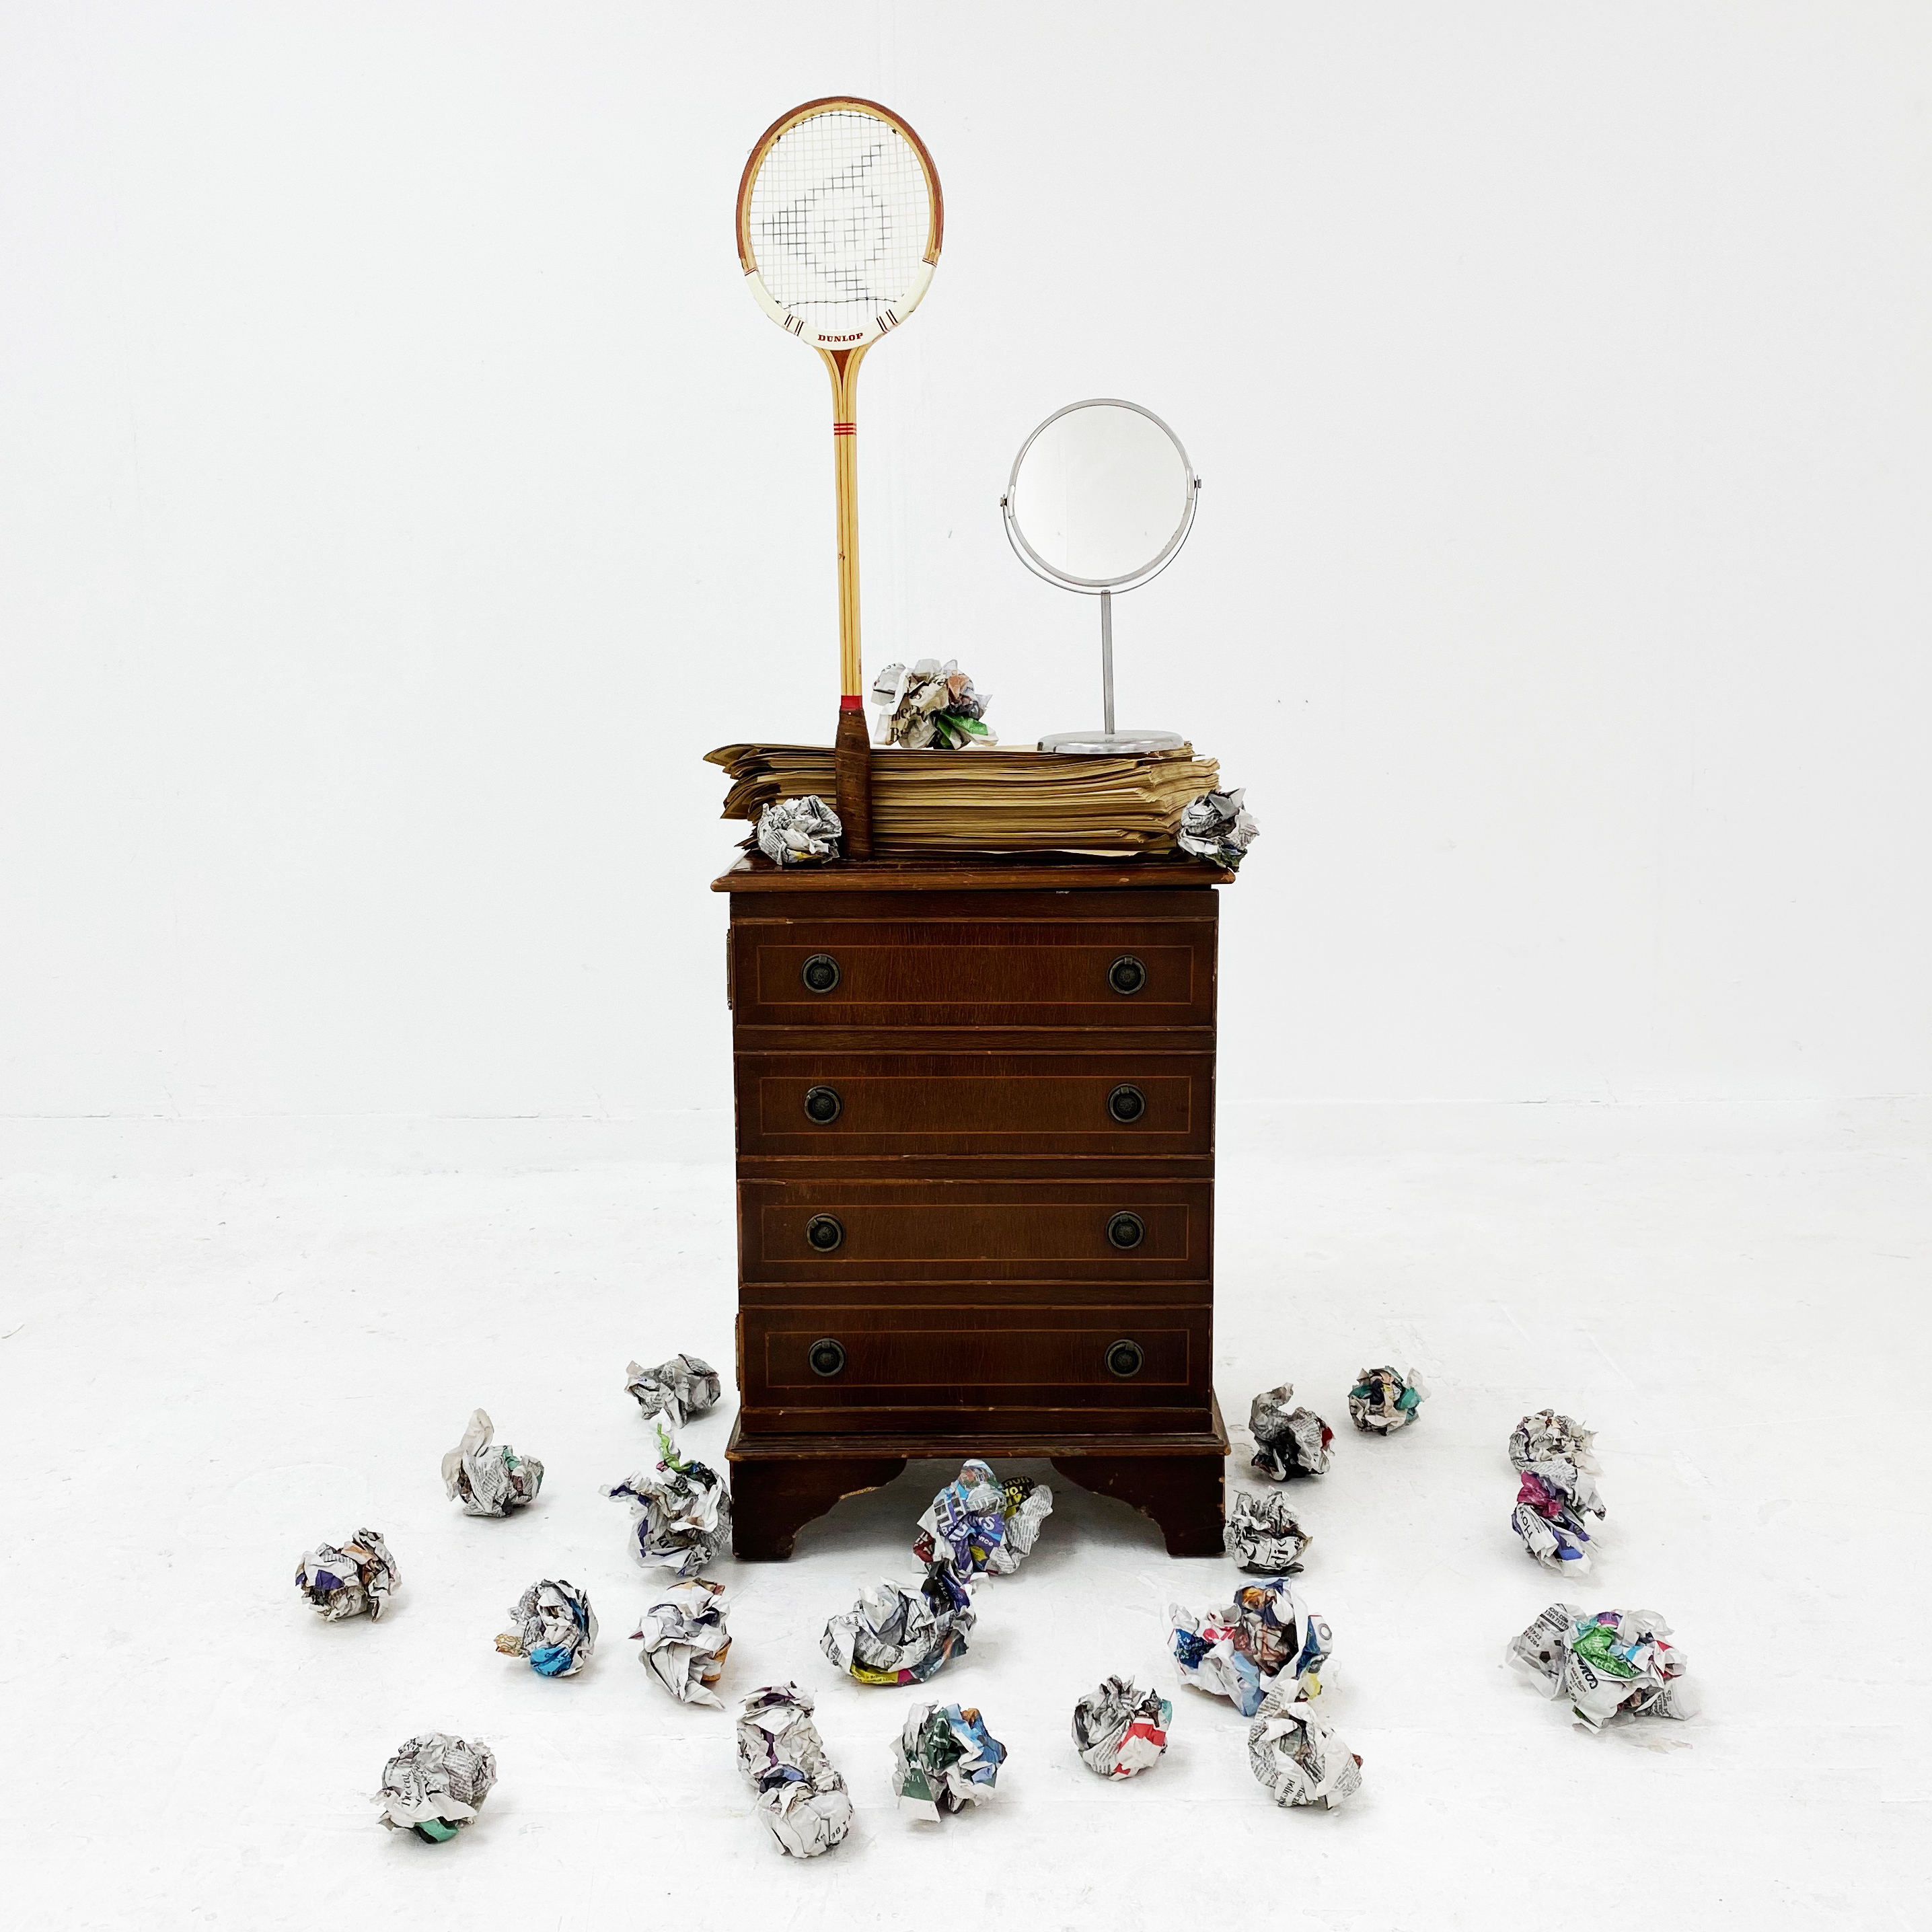 'Narcissus is back' installation. 2020 Found objects.